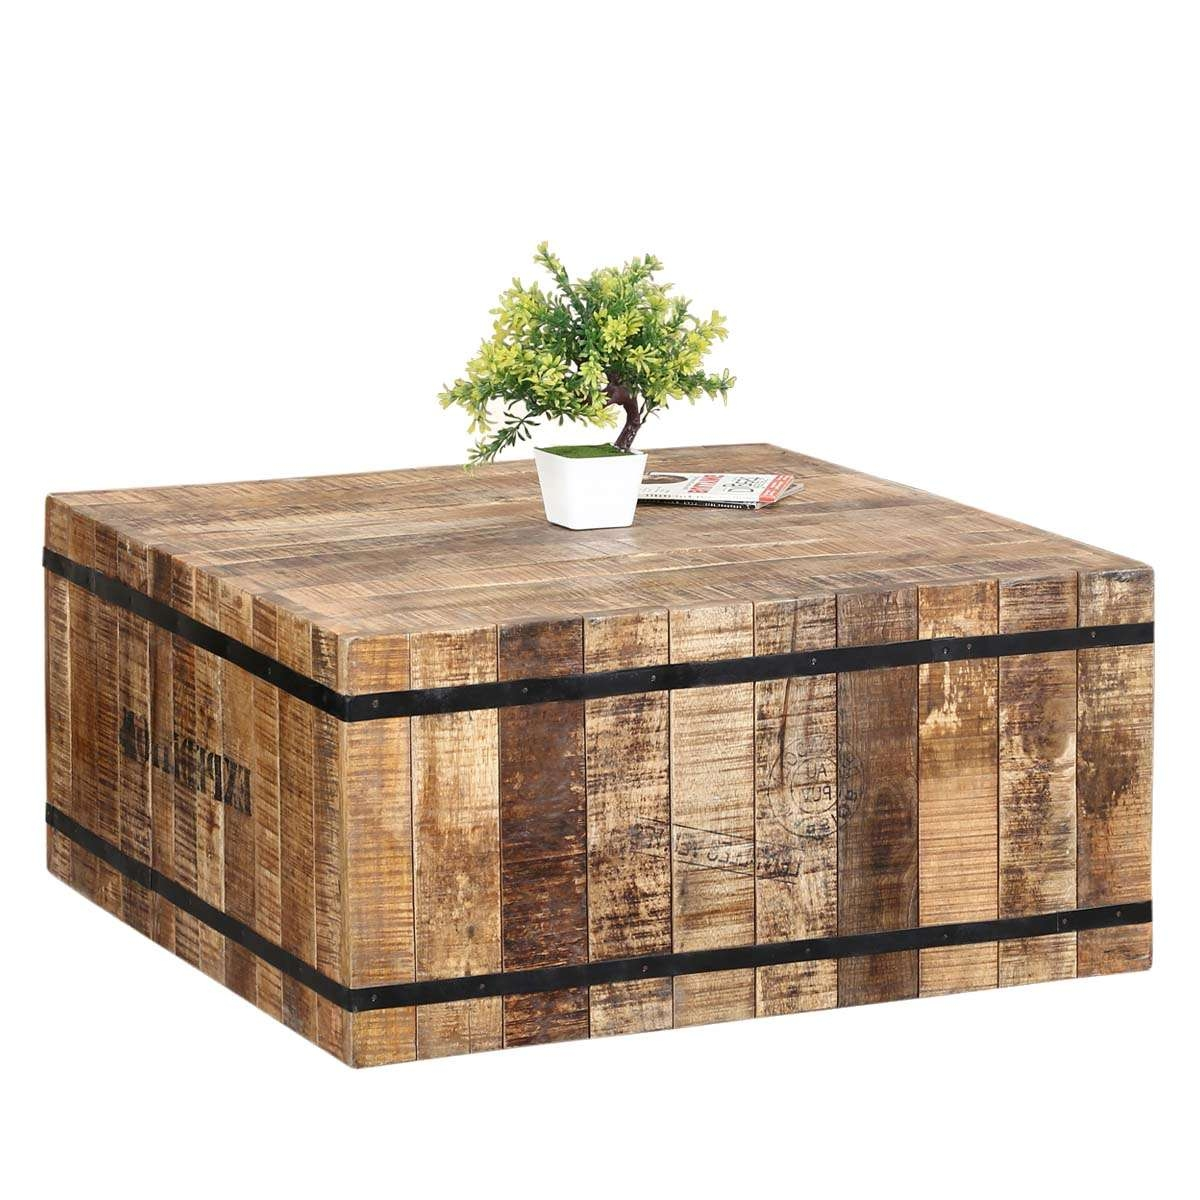 Widely Used Mango Coffee Tables Inside Rustic Mango Wood & Iron Square Box Style Coffee Table (View 20 of 20)